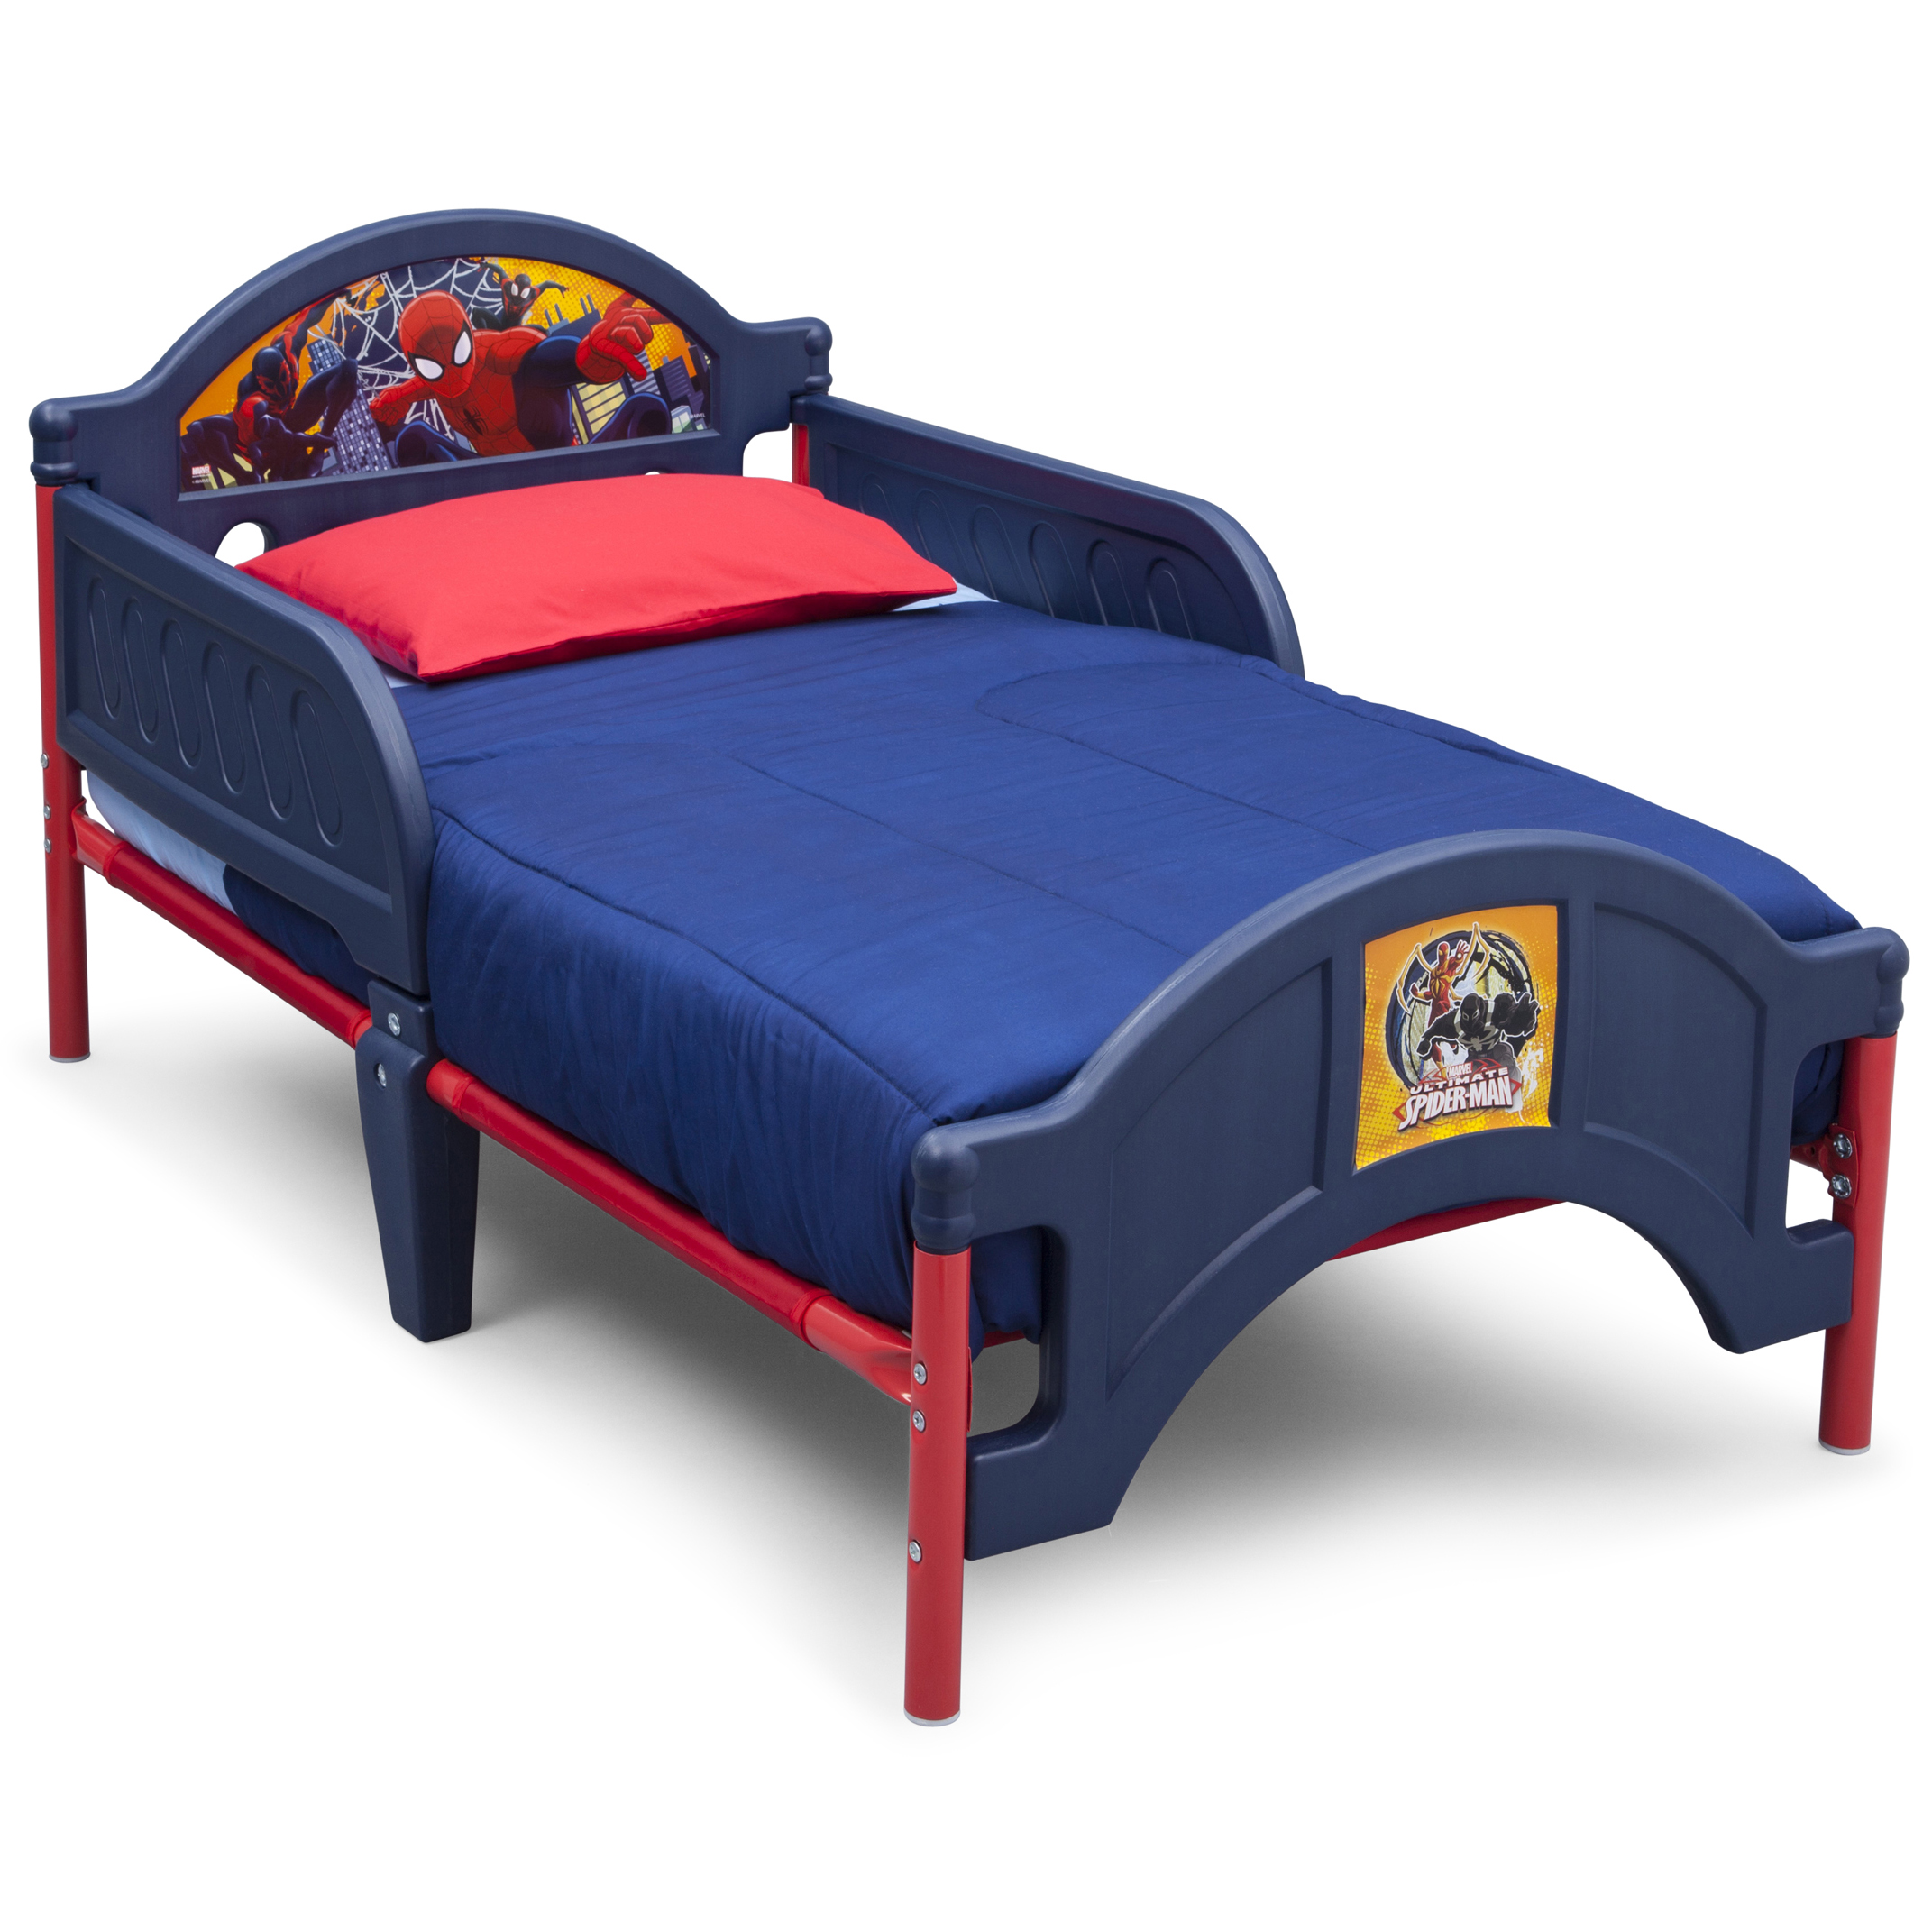 Marvel Spider-Man Plastic Toddler Bed by Delta Children